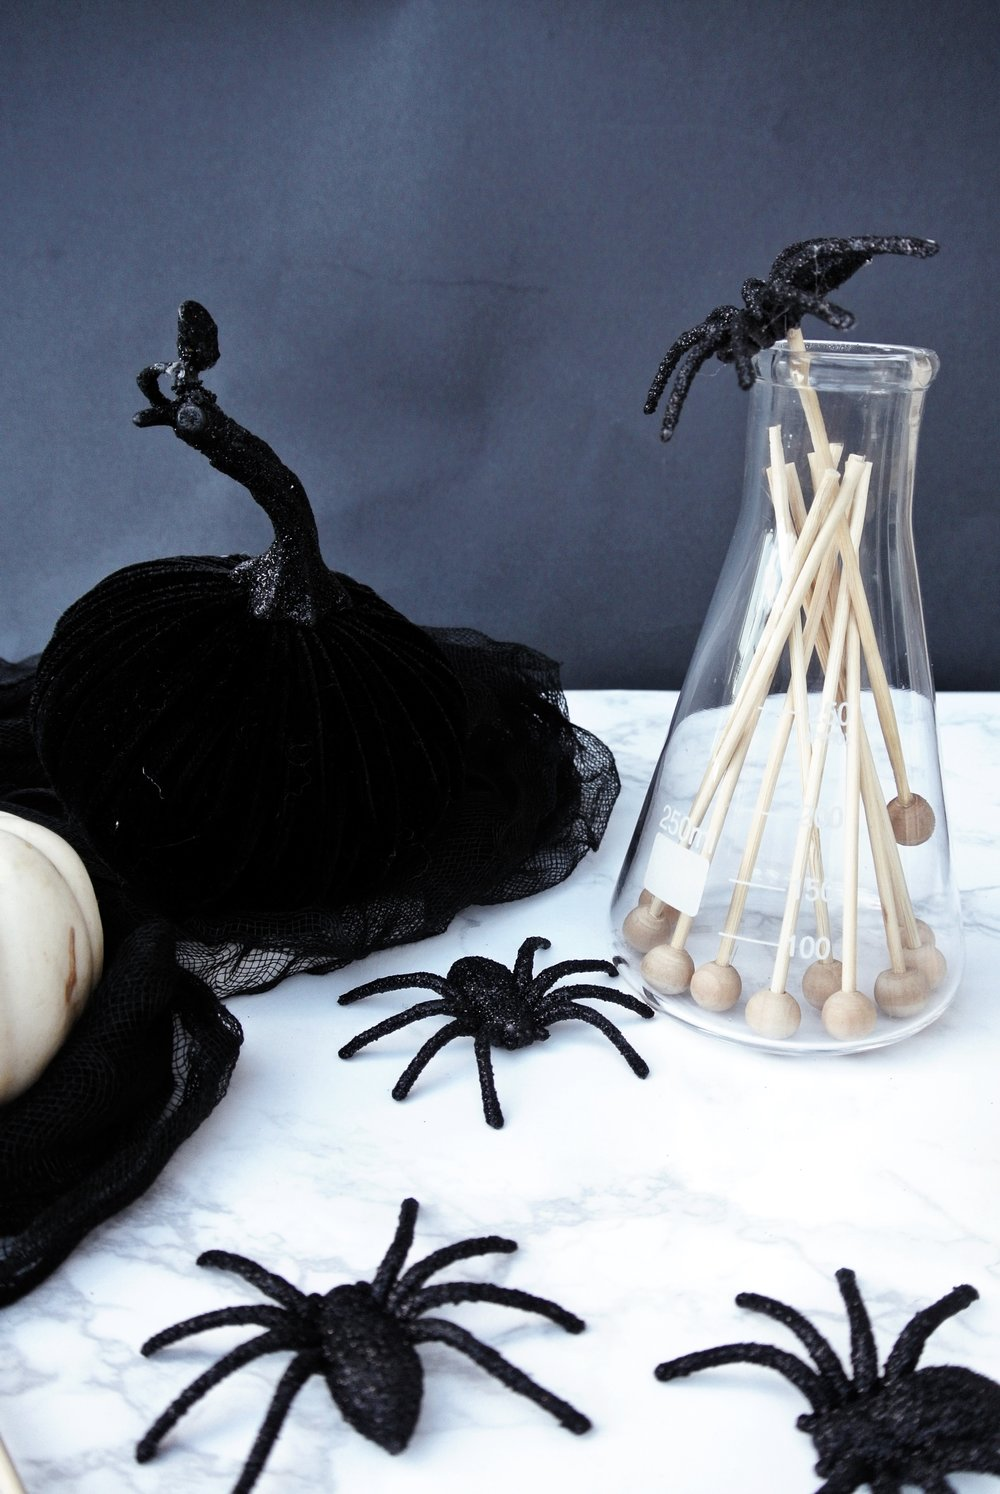 DIY spider stir sticks for Halloween | via crush co.